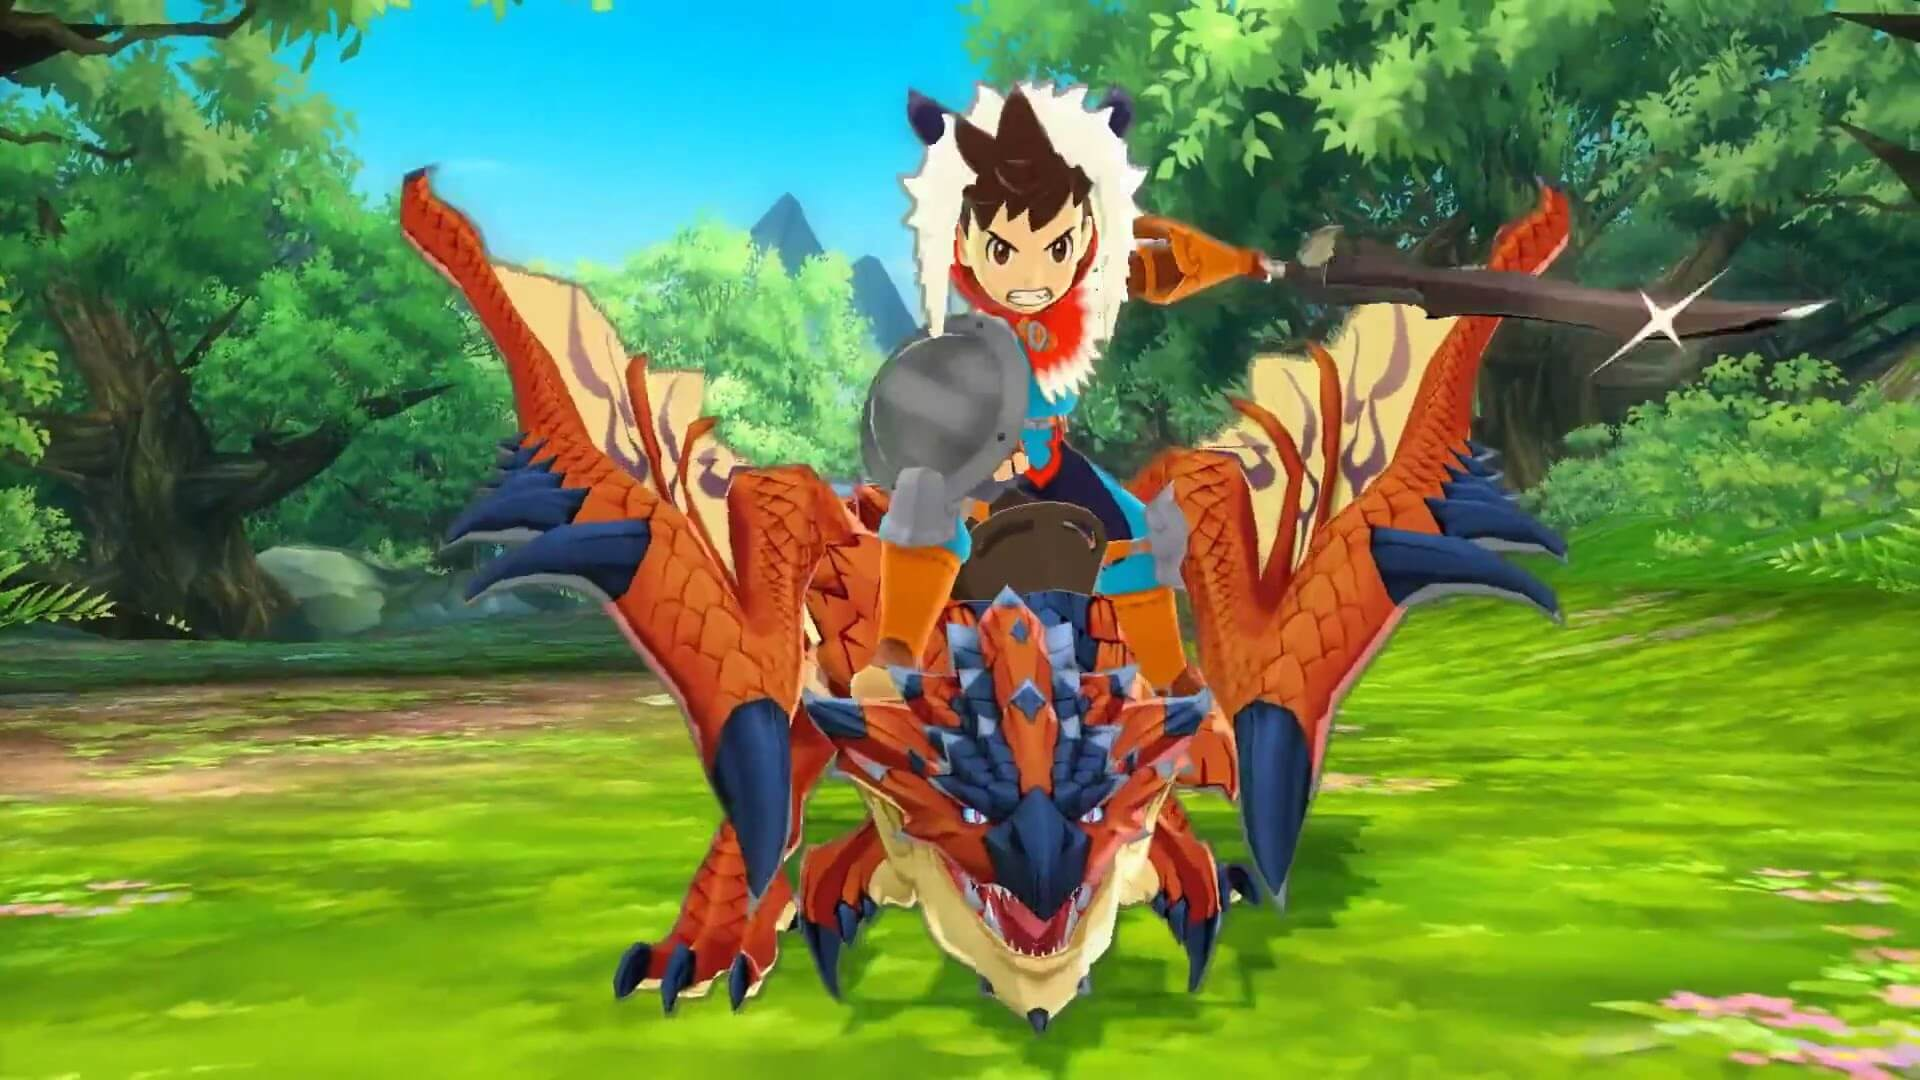 Taking A Ride In The Monster Hunter Stories Demo